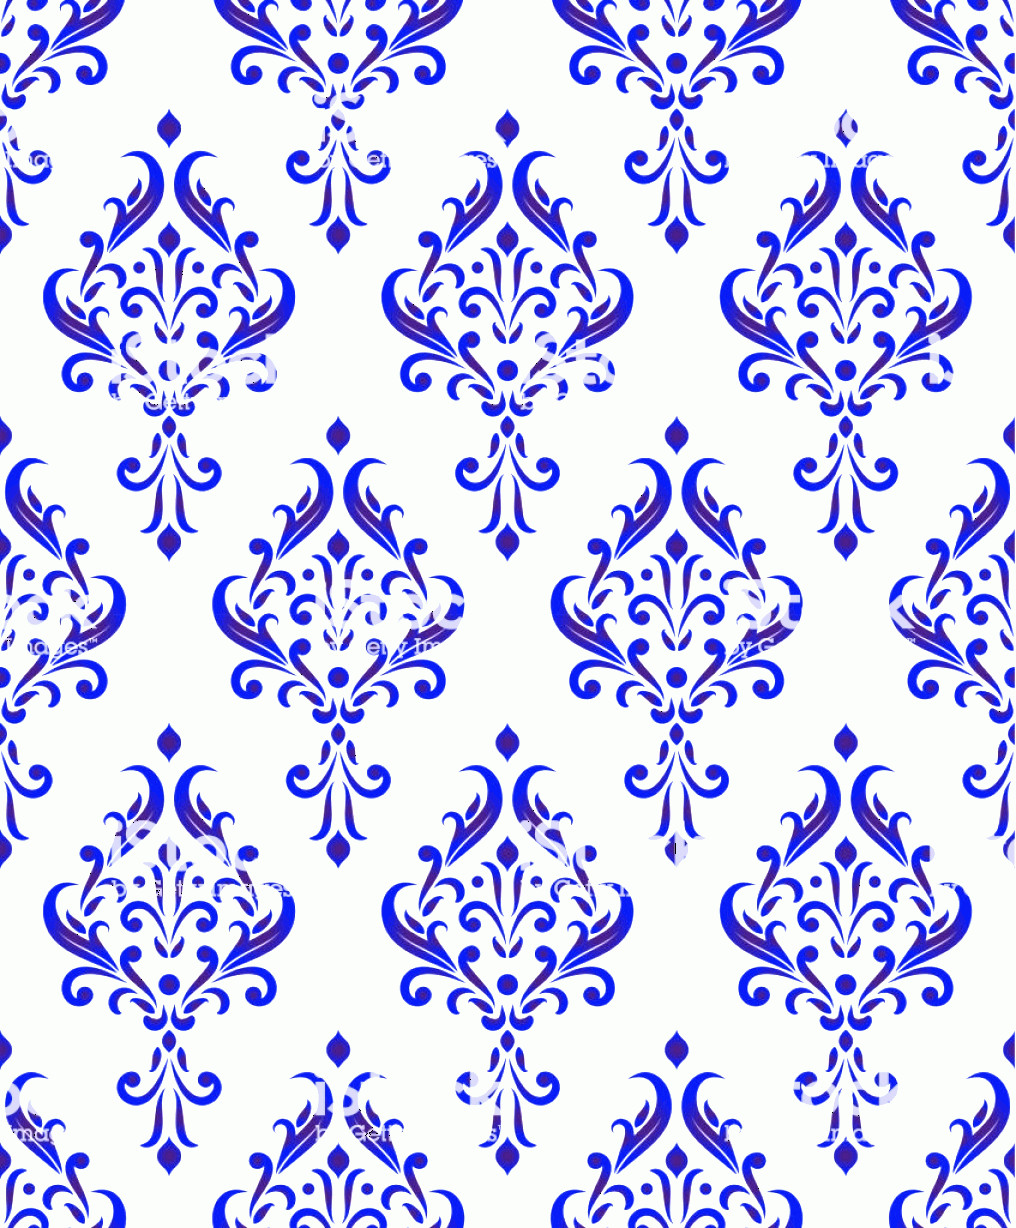 Blue And White Damask Vectors: Blue And White Damask Pattern Seamless Gm